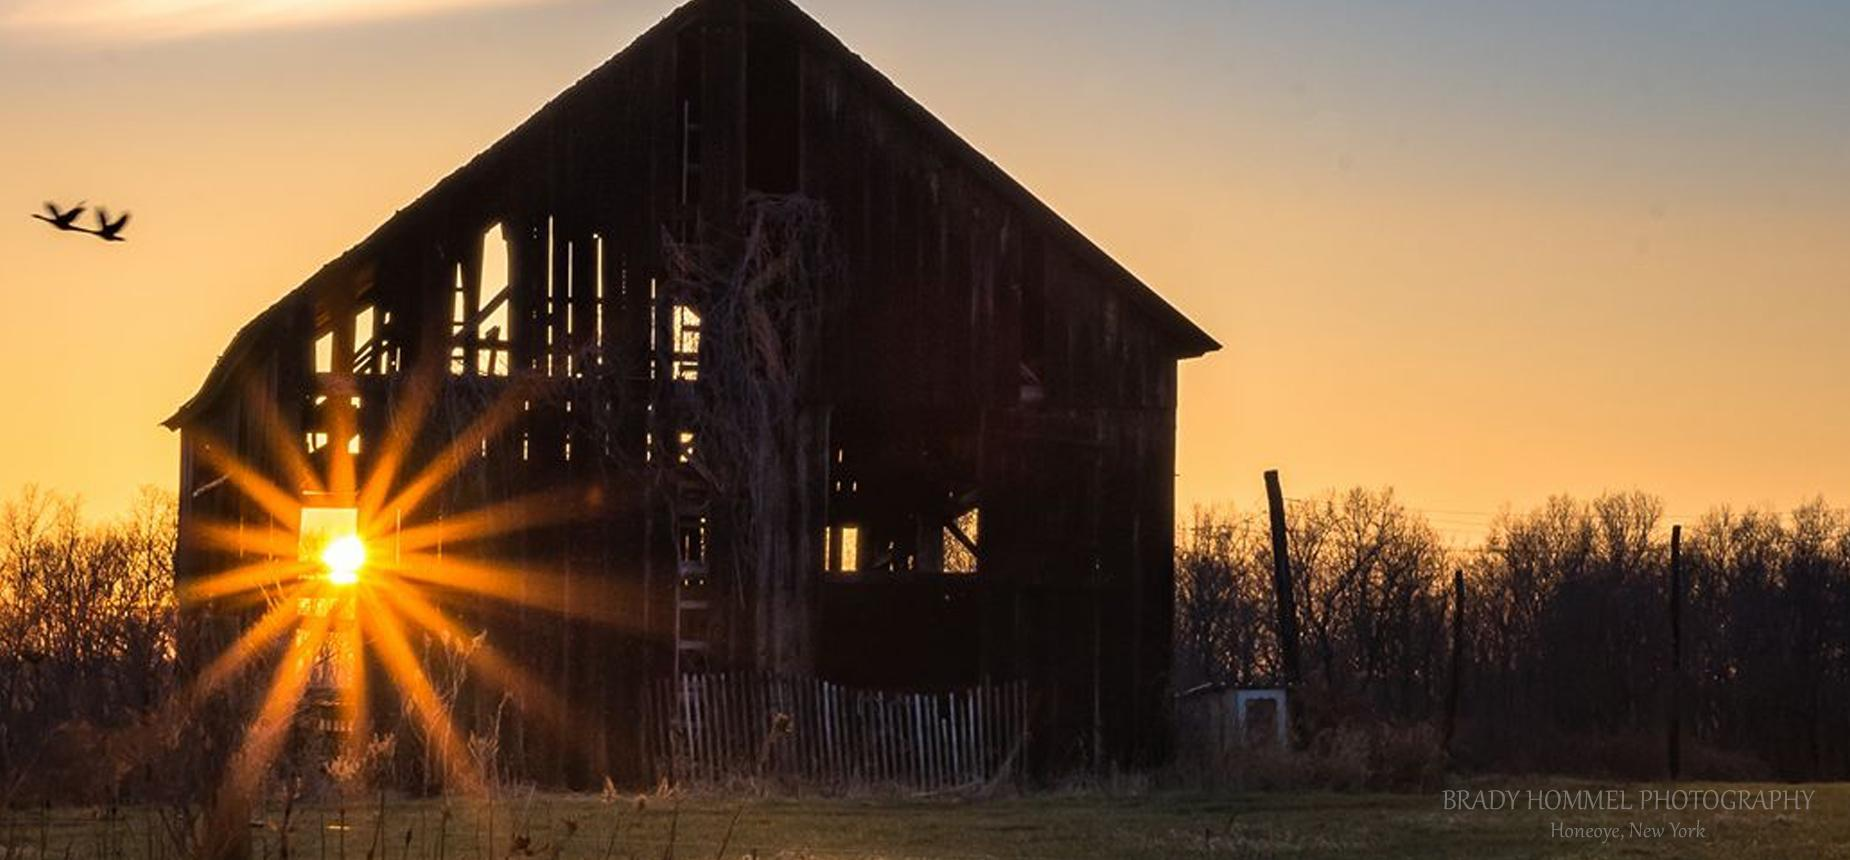 Photograph of the sun shining through a barn at sunset by Bradey Hommell.